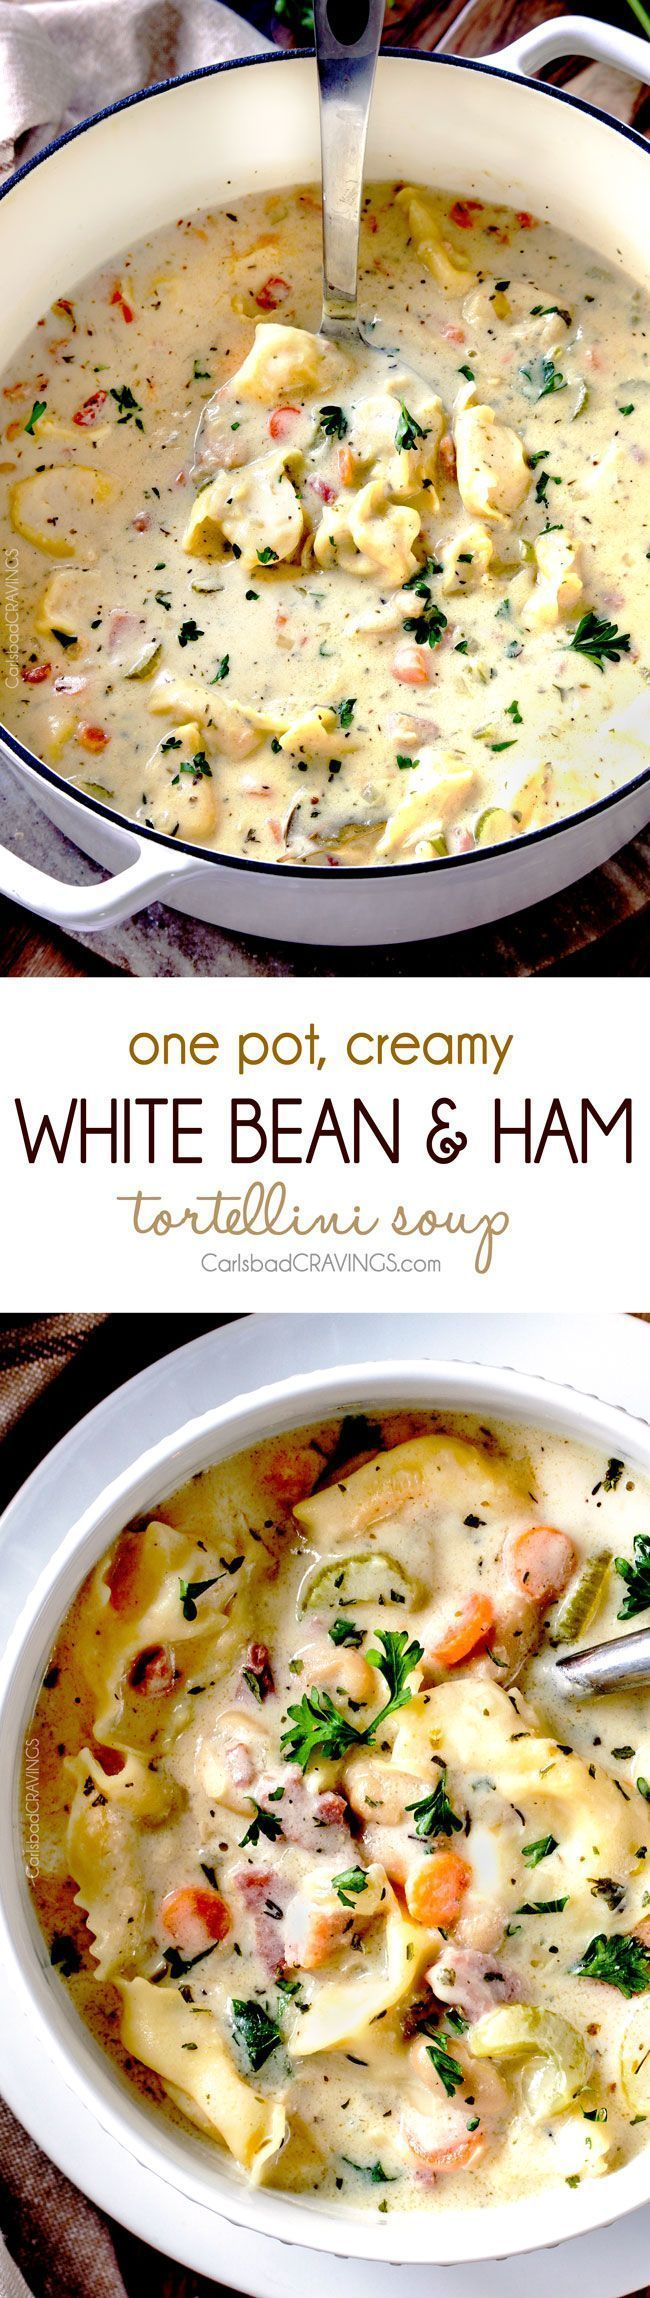 One Pot Creamy White Bean and Ham, Tortellini Soup | ONE POT hearty, cozy, Creamy White Bean and Ham Tortellini Soup simmered with onions, carrots, celery and seasonings is SO easy and lick your bowl delicious! love the addition of cheesy tortellini!